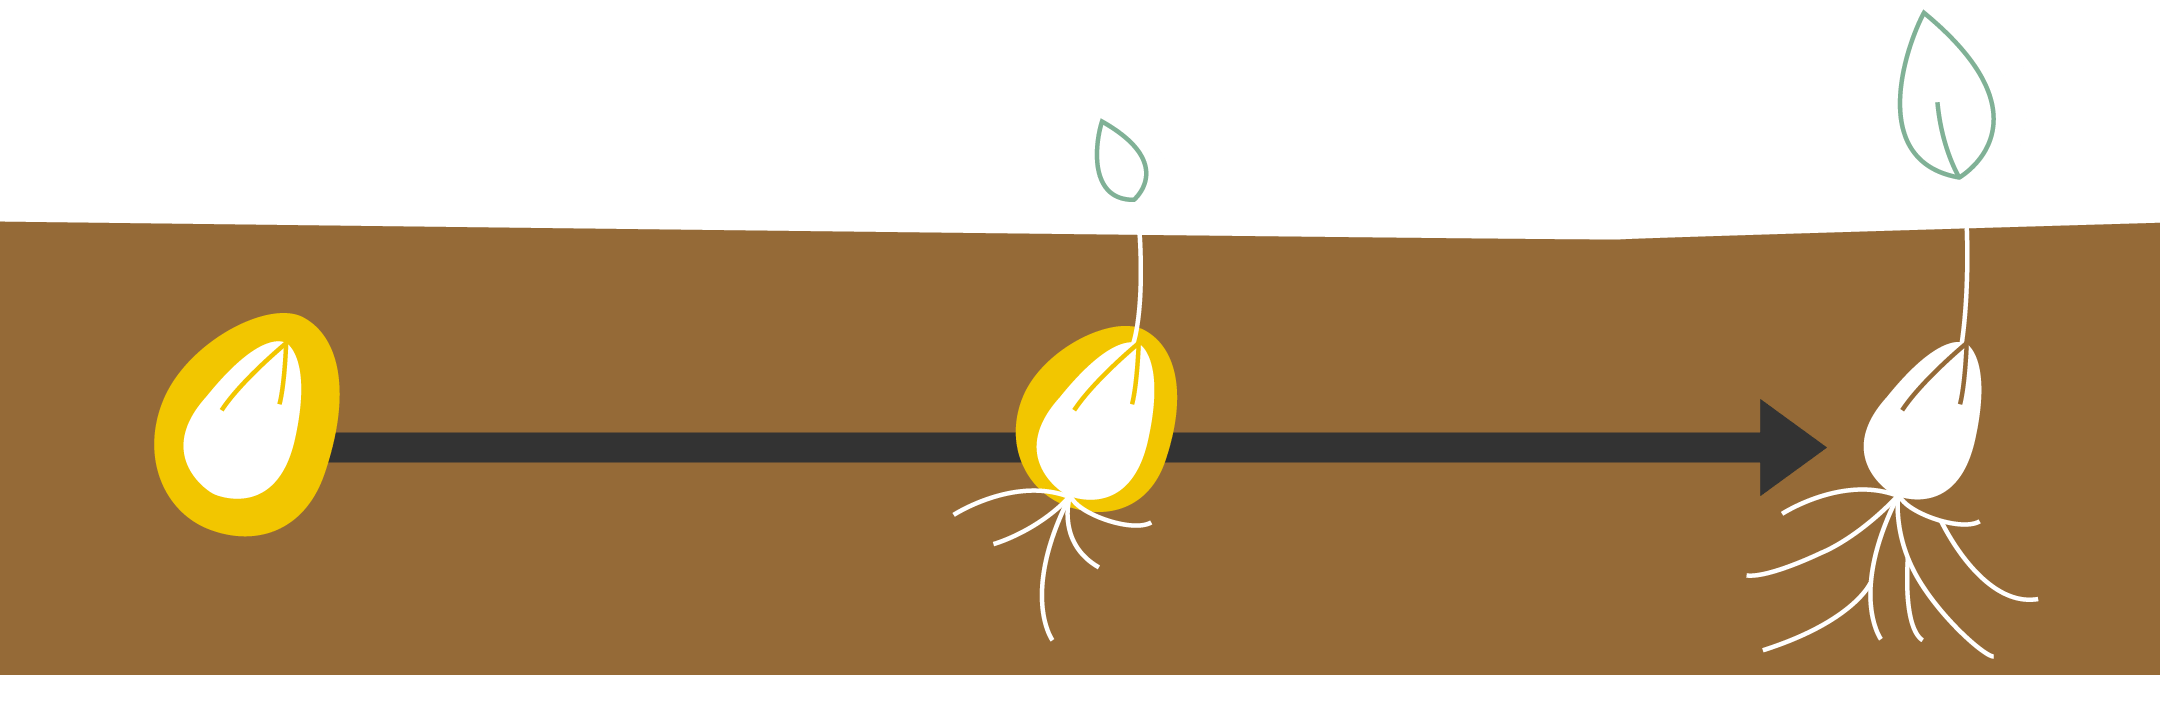 graphic plant development with seed treatment